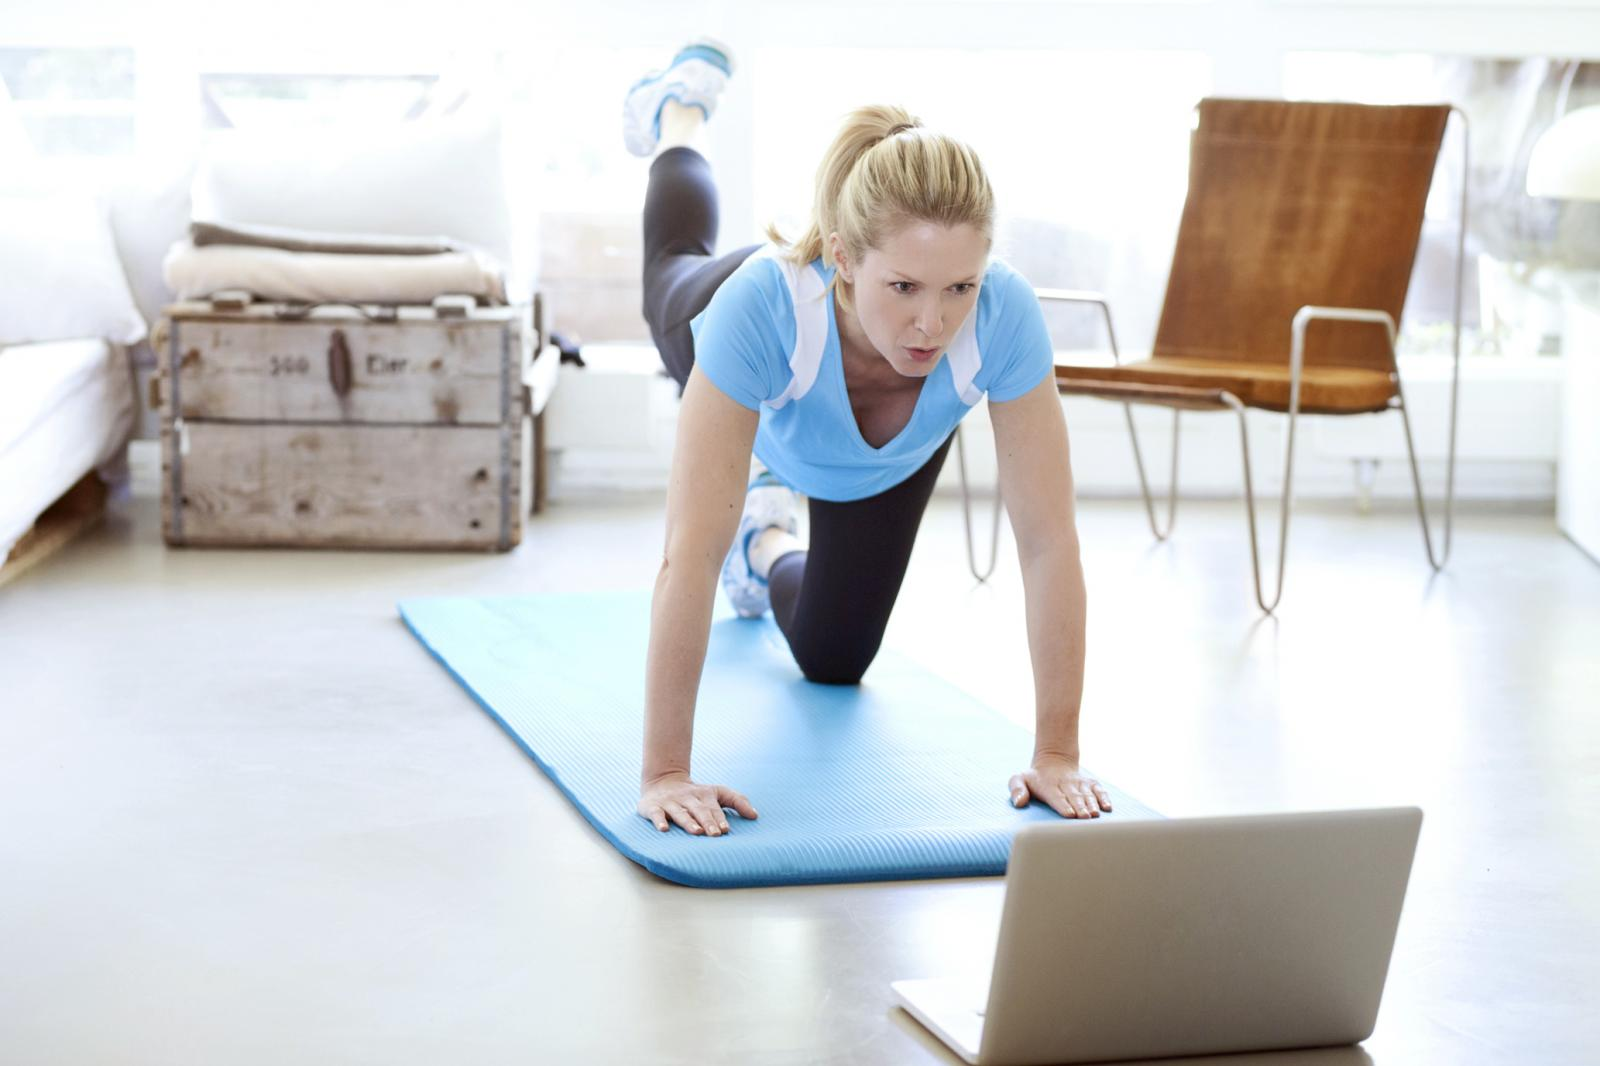 Woman looking at laptop exercising on gym mat in living room